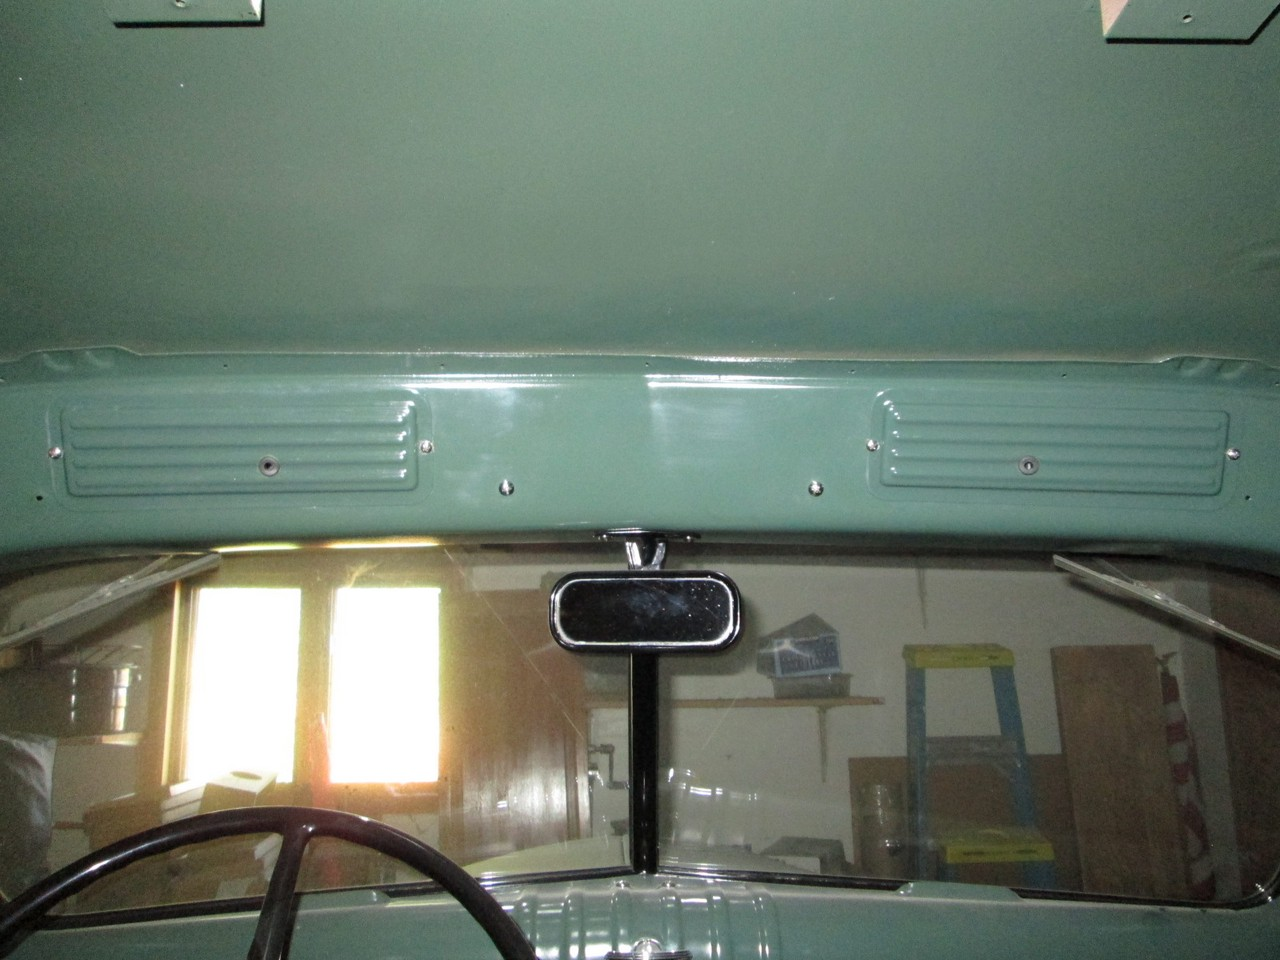 Part Sources For The Dodge Power Wagon 1949 Crew Cab Includes Two 12v Wiper Motors Arms And Blades Detailed Instructions To Install System On You Wdx Wm Or Closed Wc